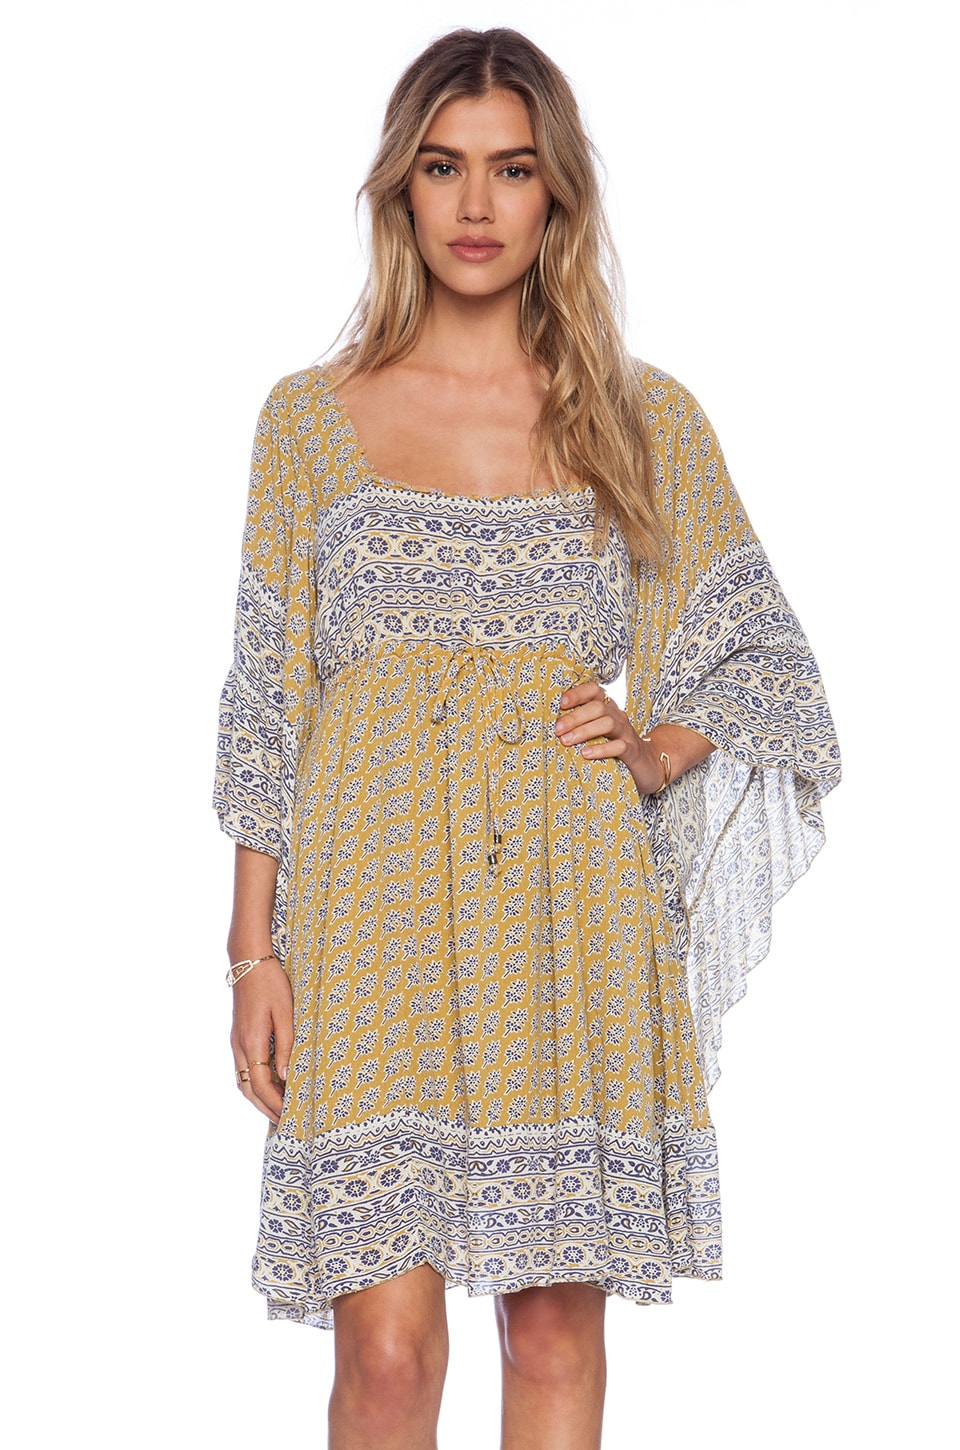 Free People Heart of Gold Mini Dress in Mustard Combo